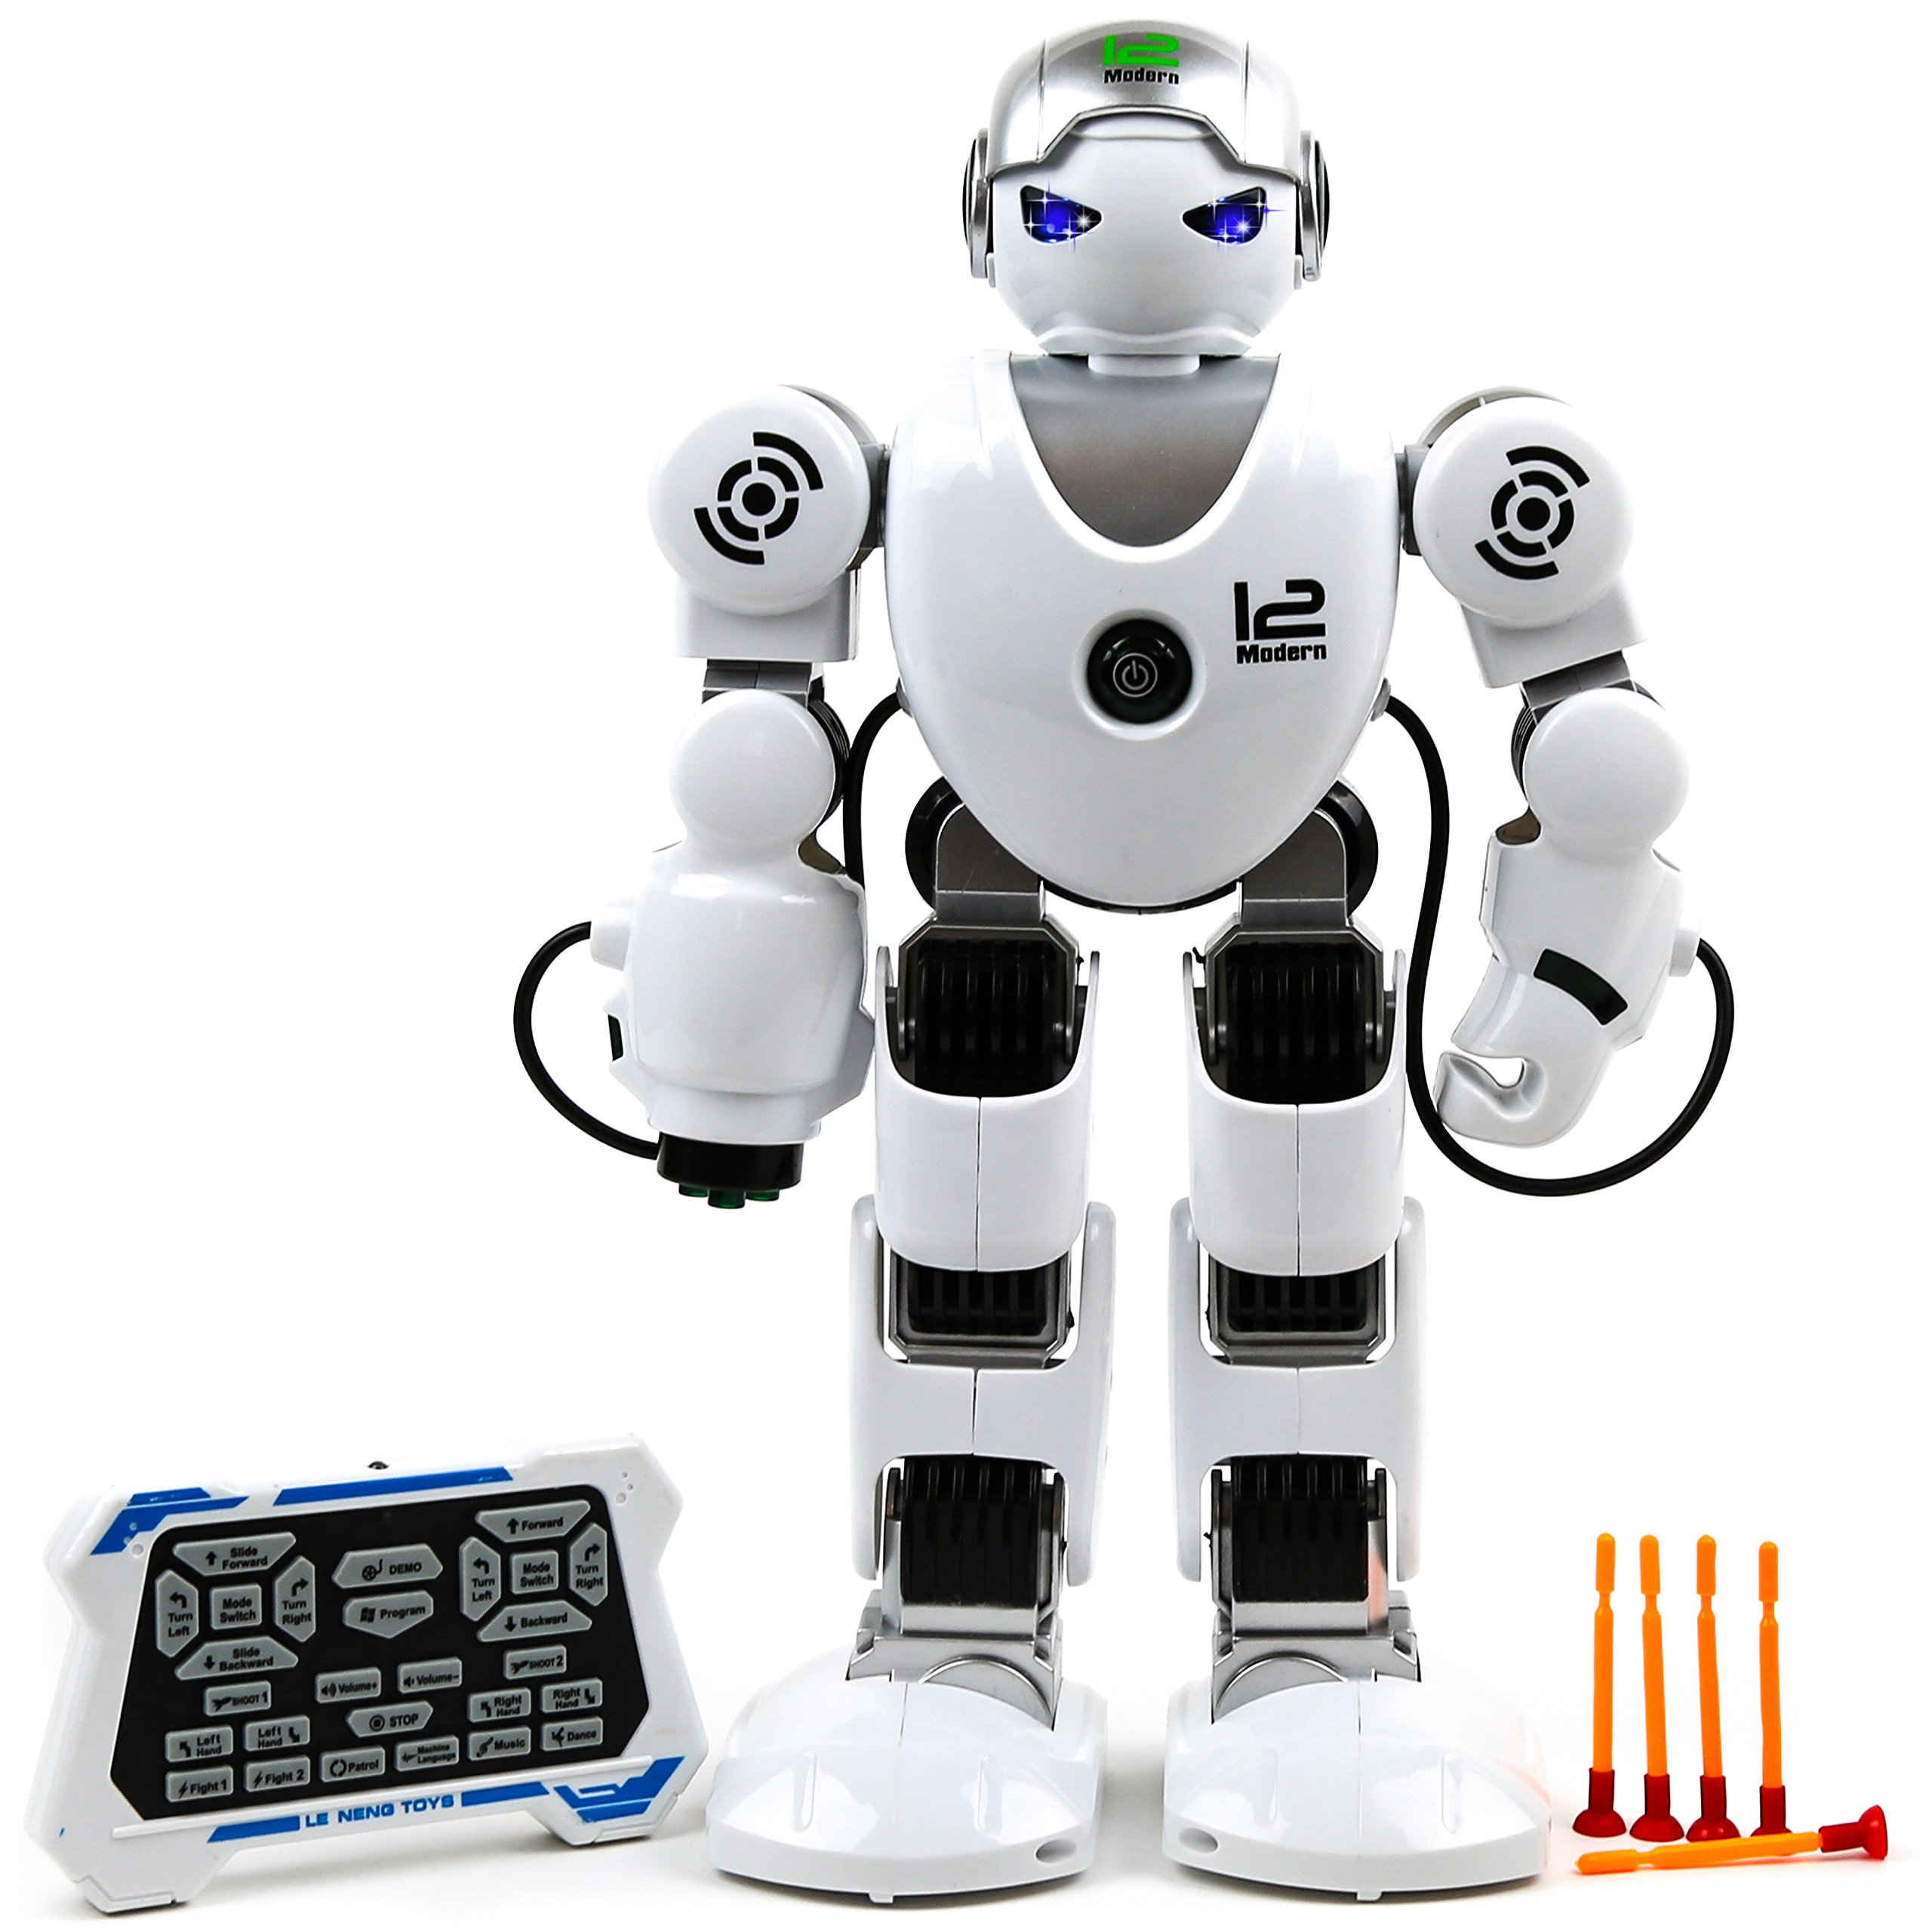 Toysery Remote Control Robot Toy For Kids - RC Robot Toy with Colorful LED Flashing Lights and Walking Shoot Music Dance Arm-swing - Powered by Built-in USB Rechargeable Battery